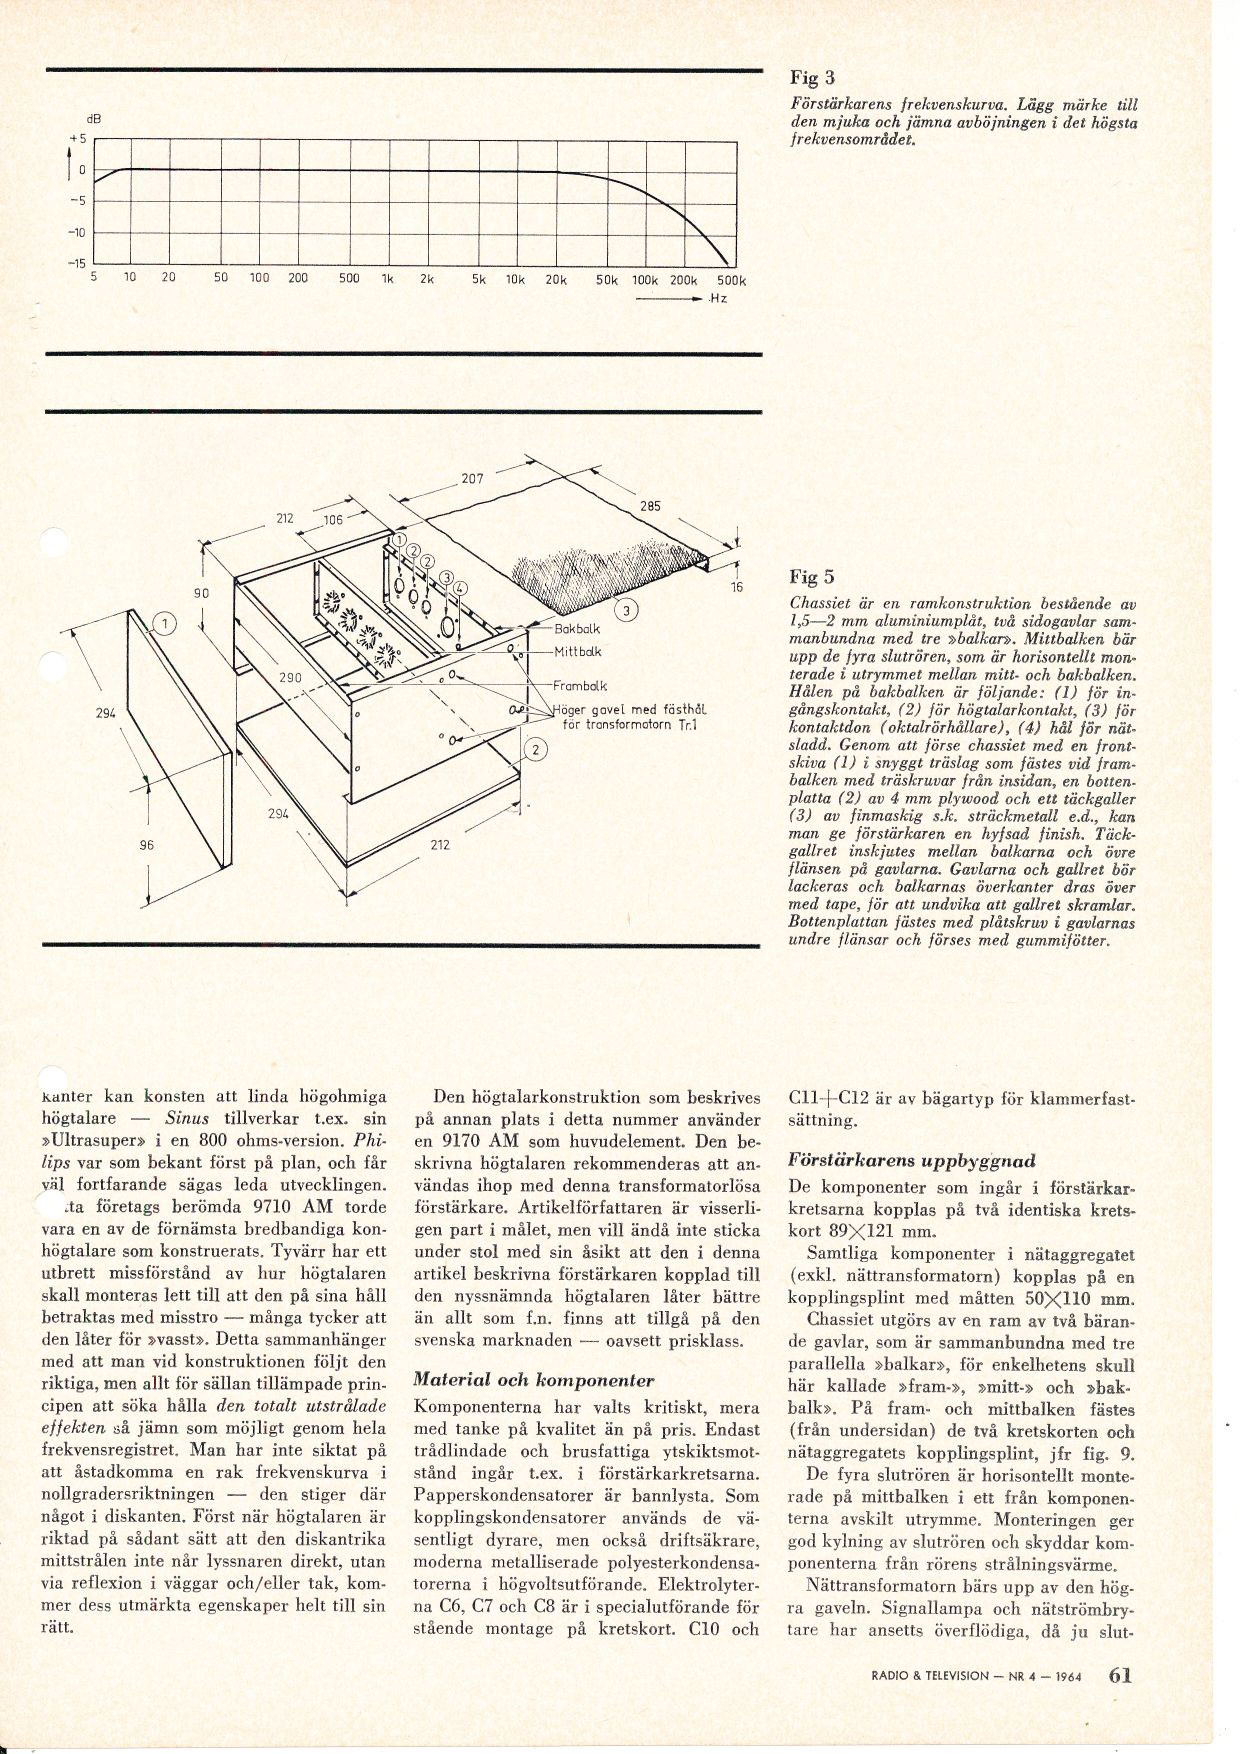 Kes Audio Lm1800 Stereo Decoder Page 61